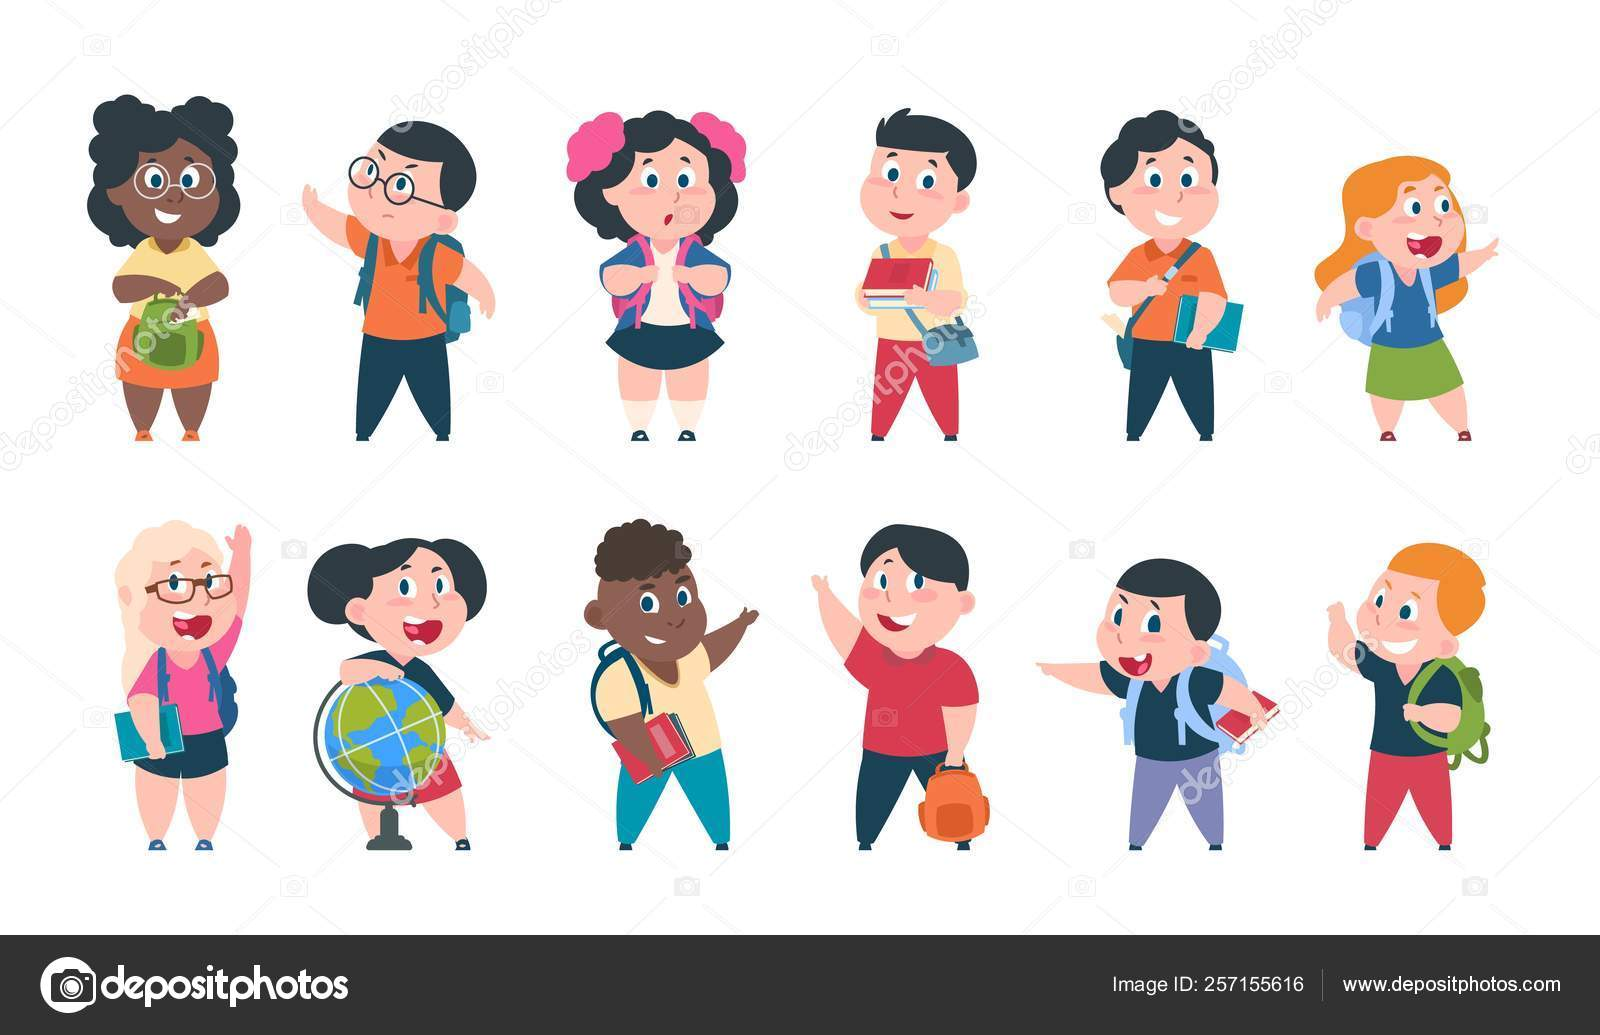 School Kids Cartoon Children With Books And School Supplies Happy Cute Boys And Girls Pupils Characters Vector Study Education Set Stock Vector C Spicytruffel 257155616